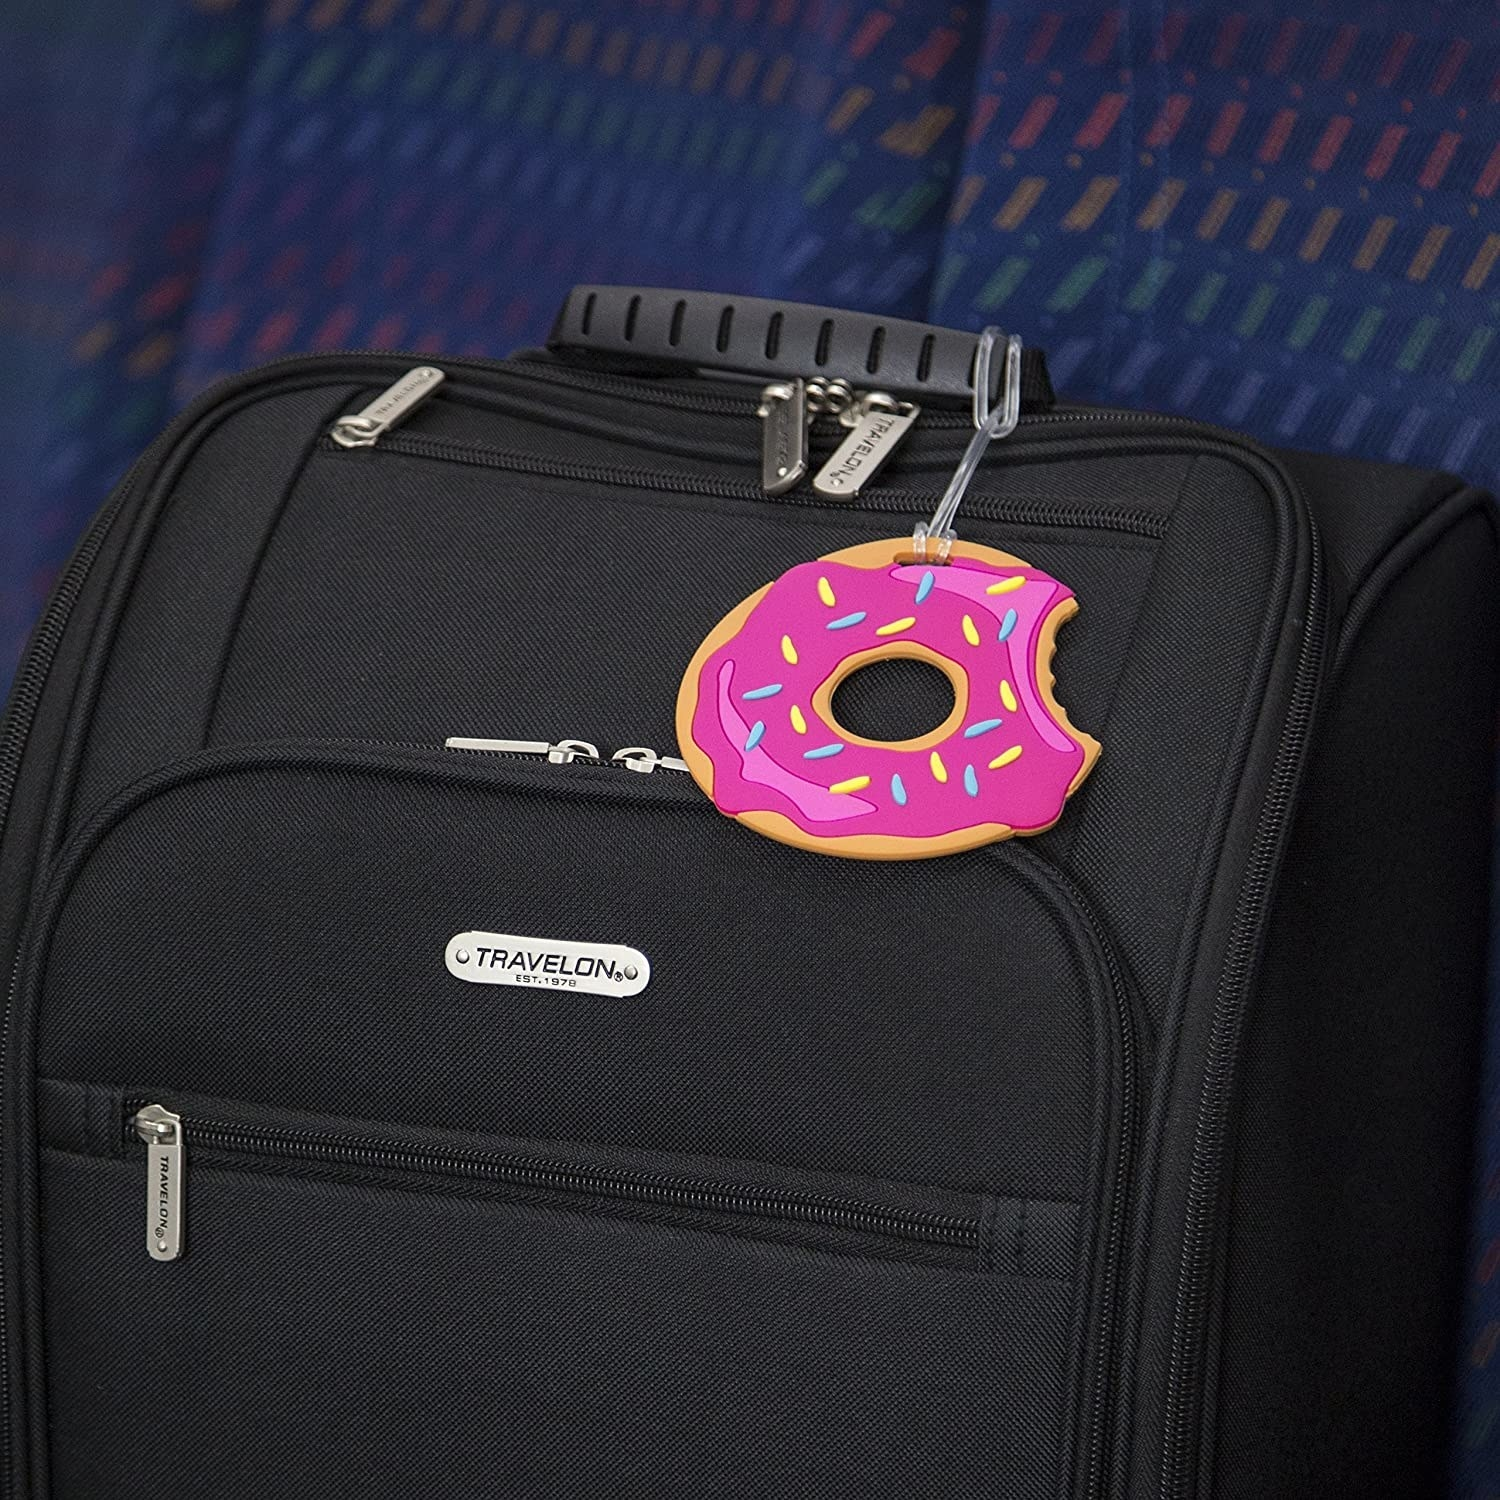 A donut tag attached to a suitcase